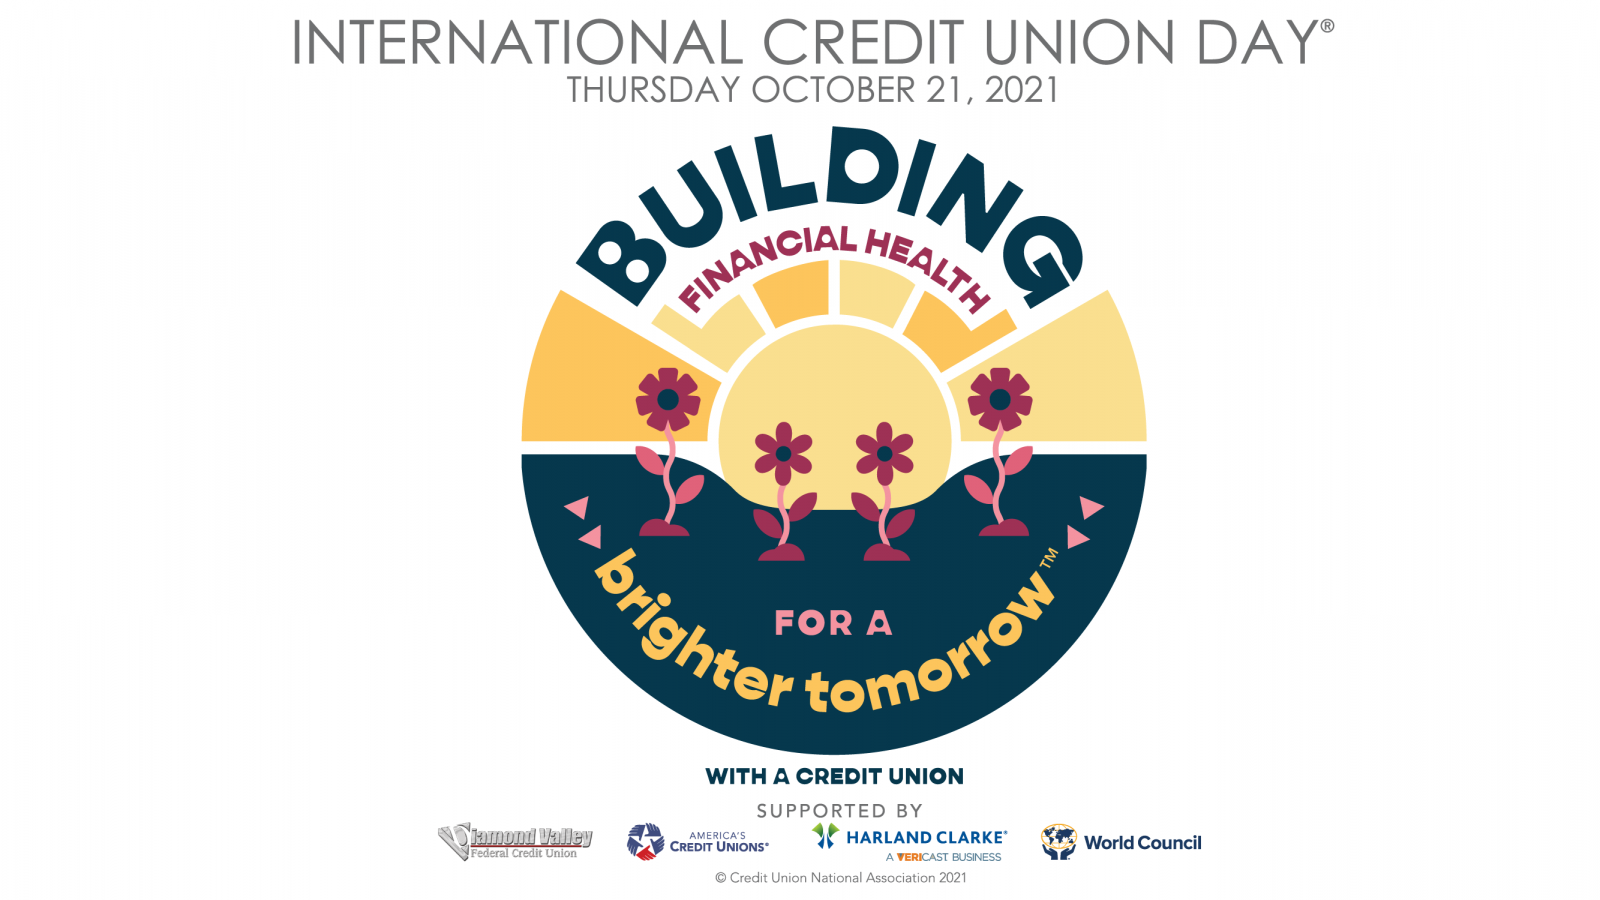 Celebrate 73 years of International Credit Union Day® at Diamond Valley Federal Credit Union